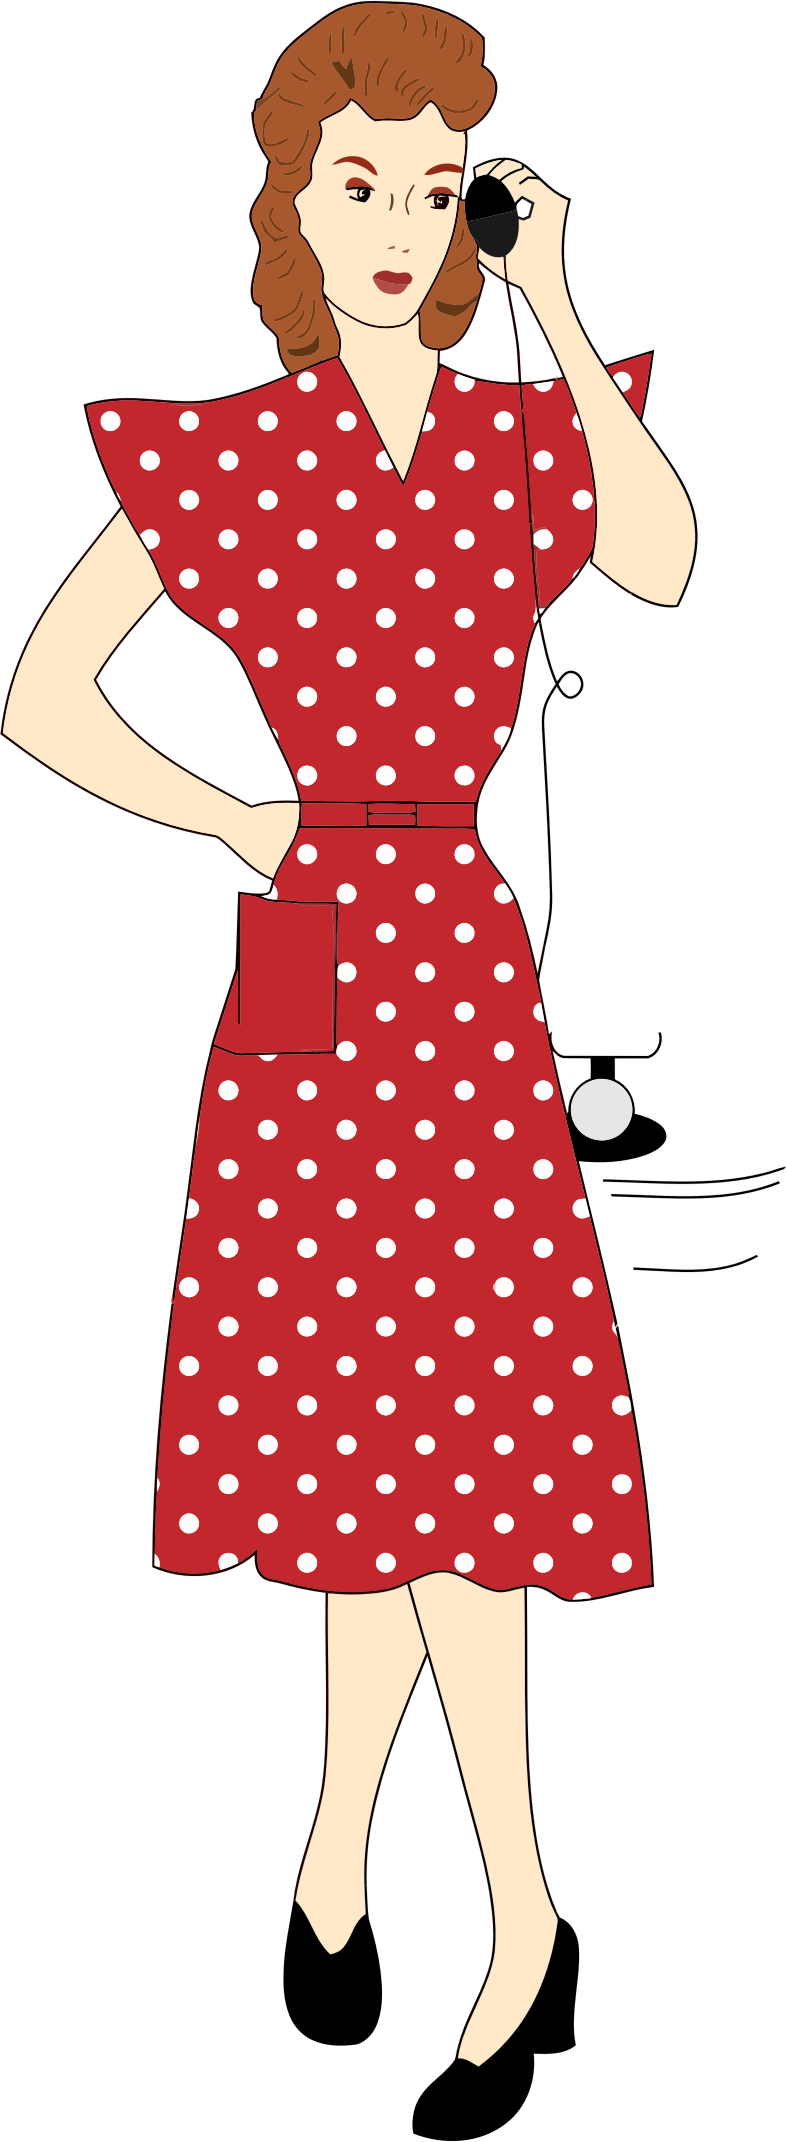 Vintage s woman using. Telephone clipart female person